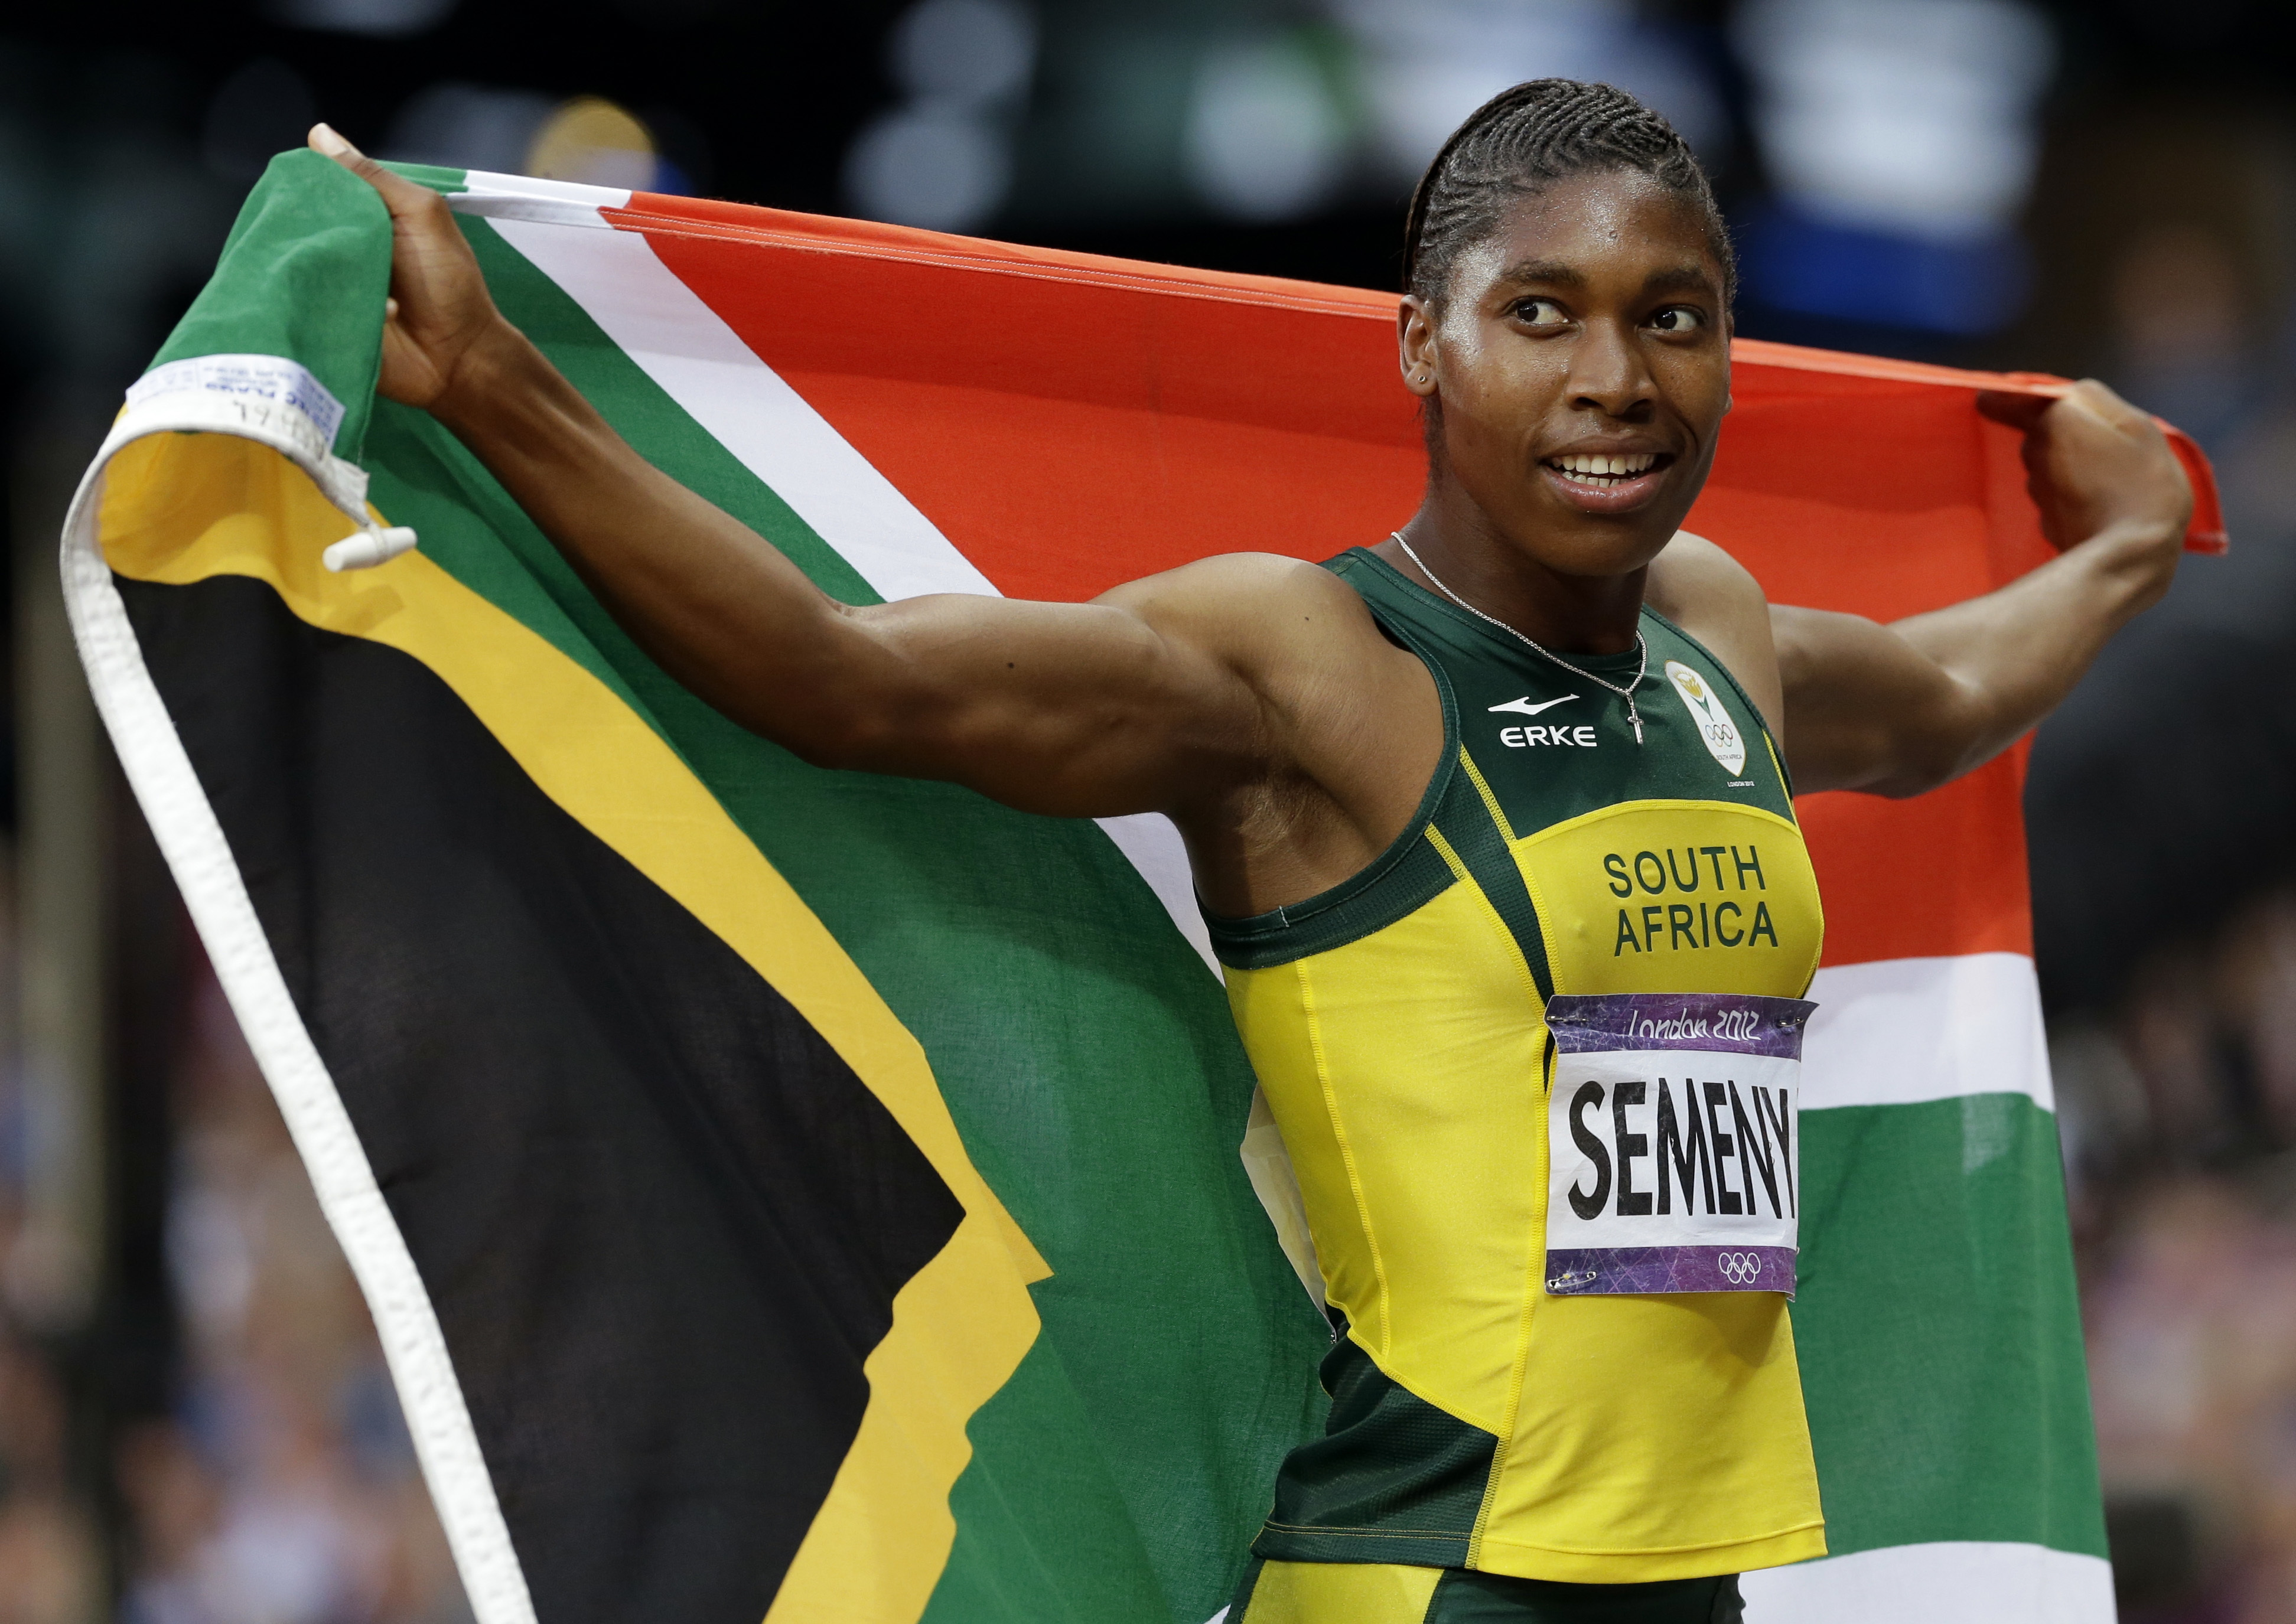 Caster Semenya celebrates winning silver at London 2012 - which was later upgraded to a gold